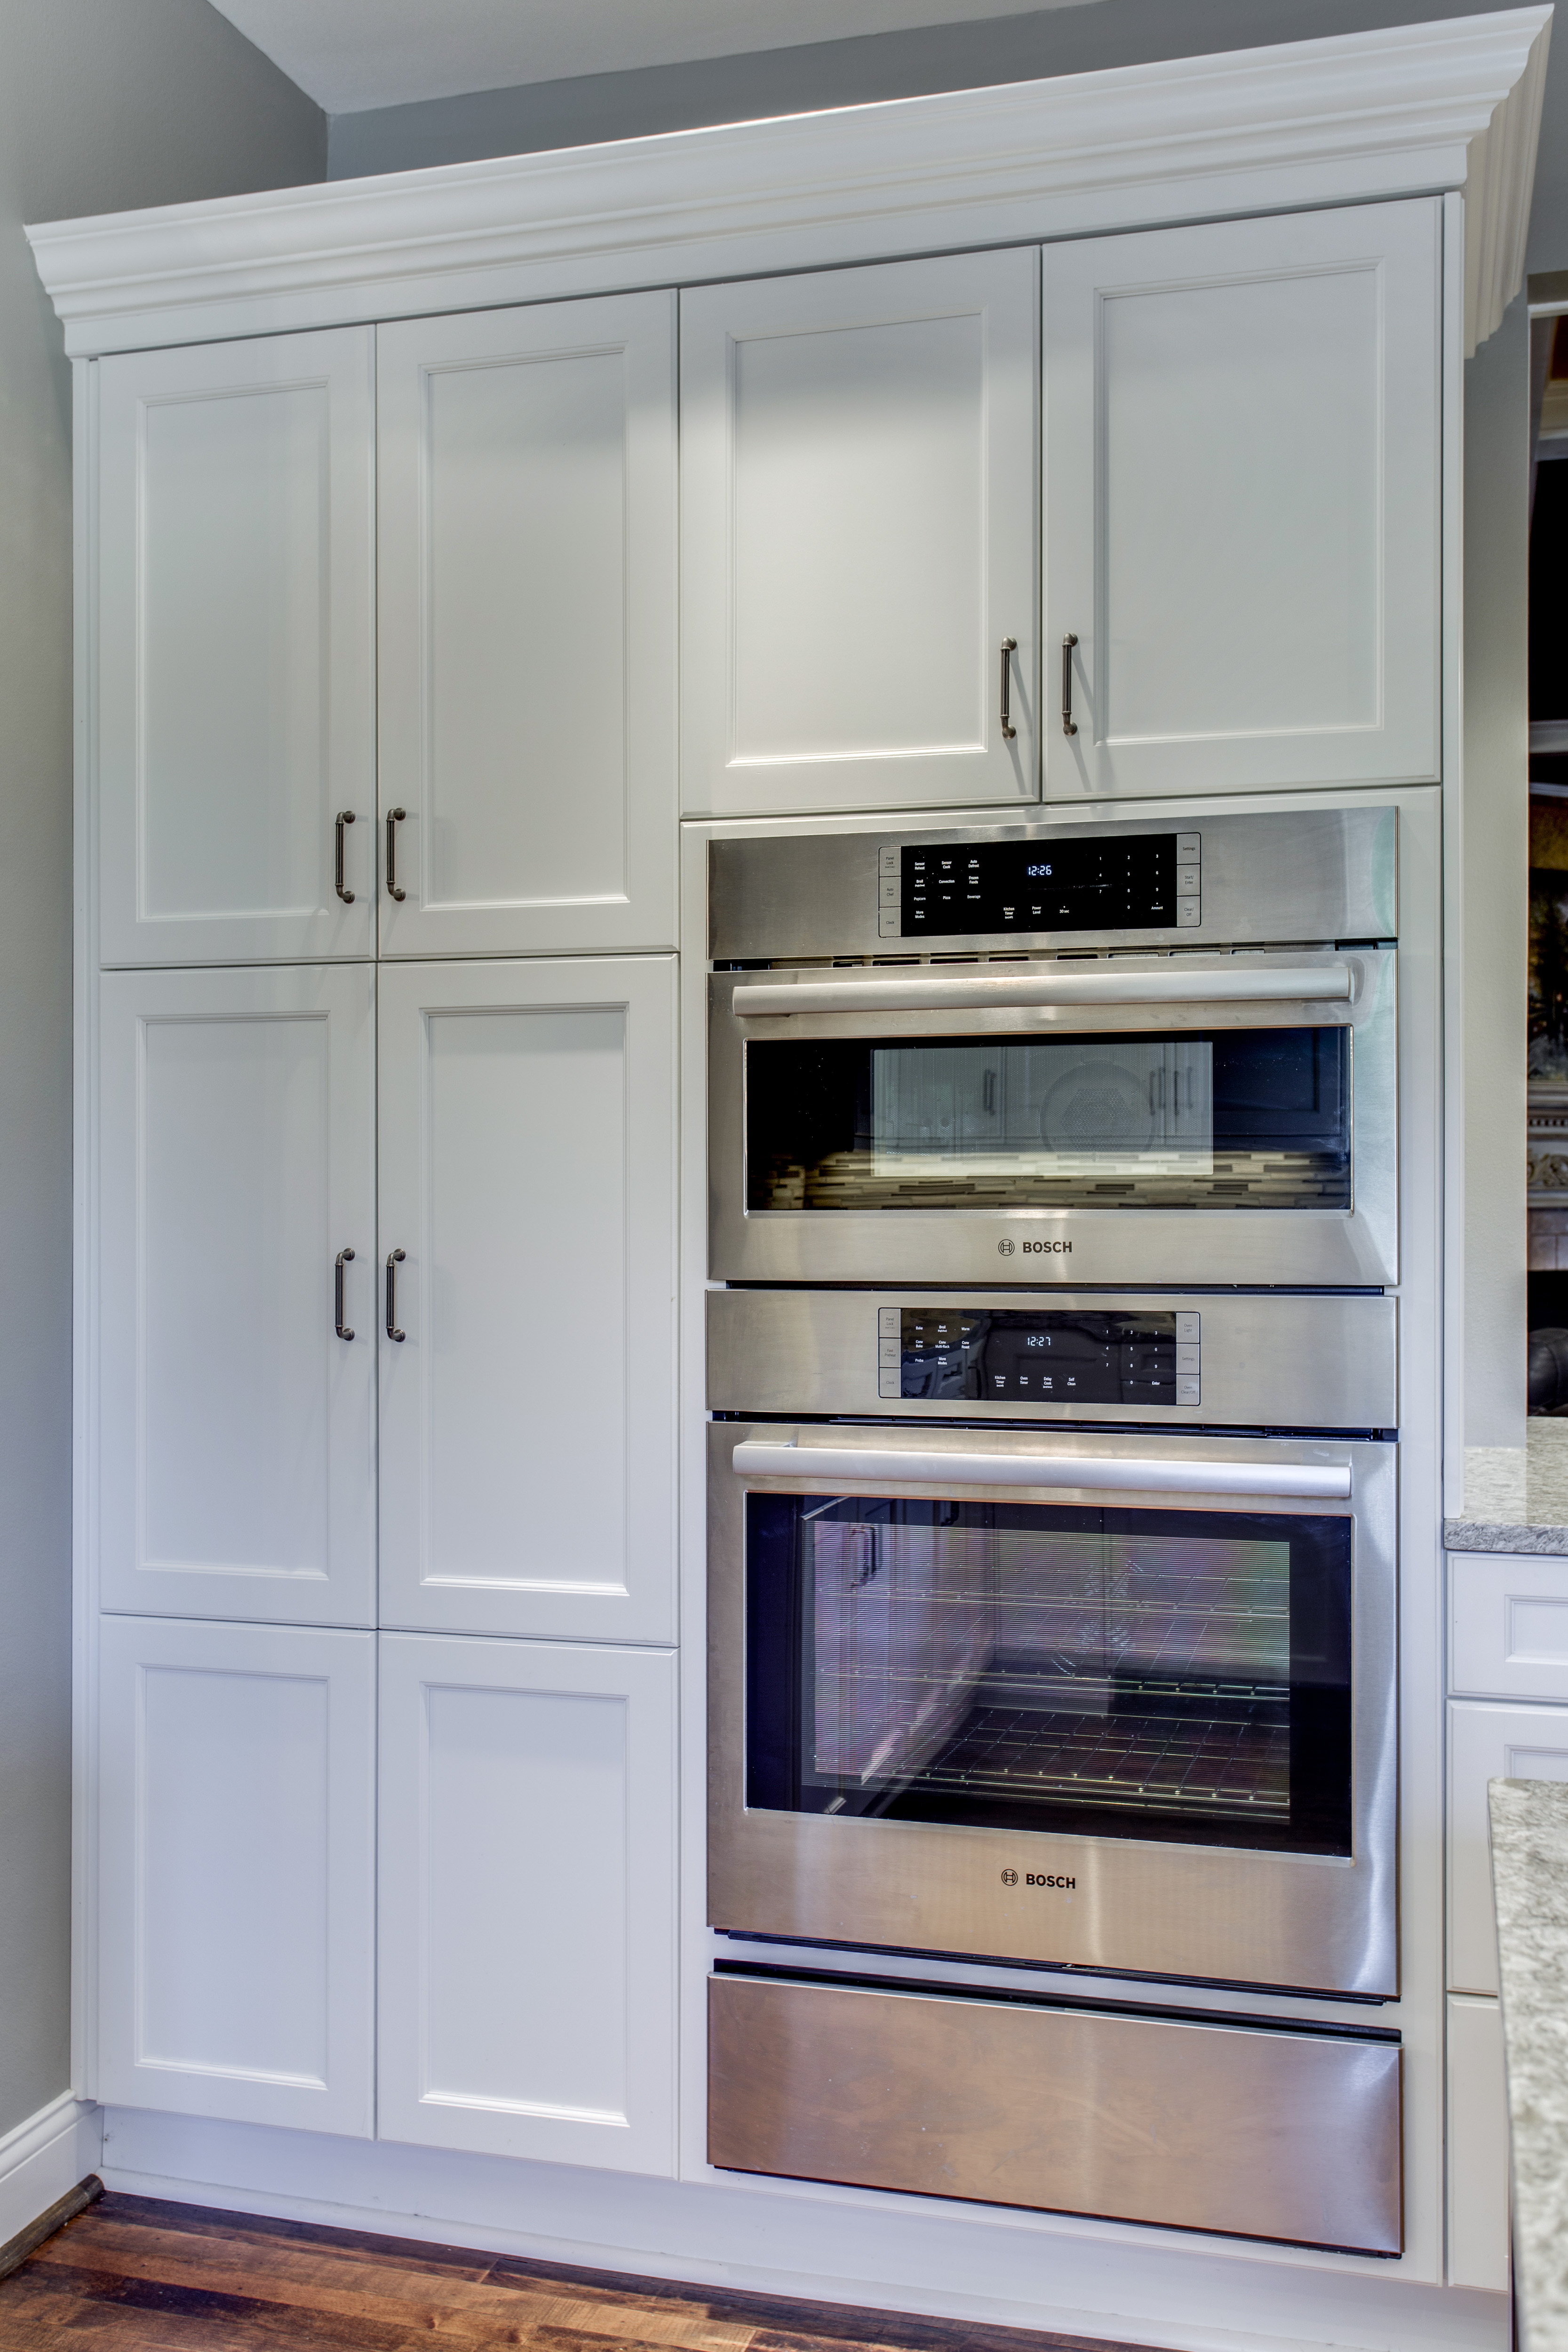 The Different Types of Cabinet Construction - Cabinet ...